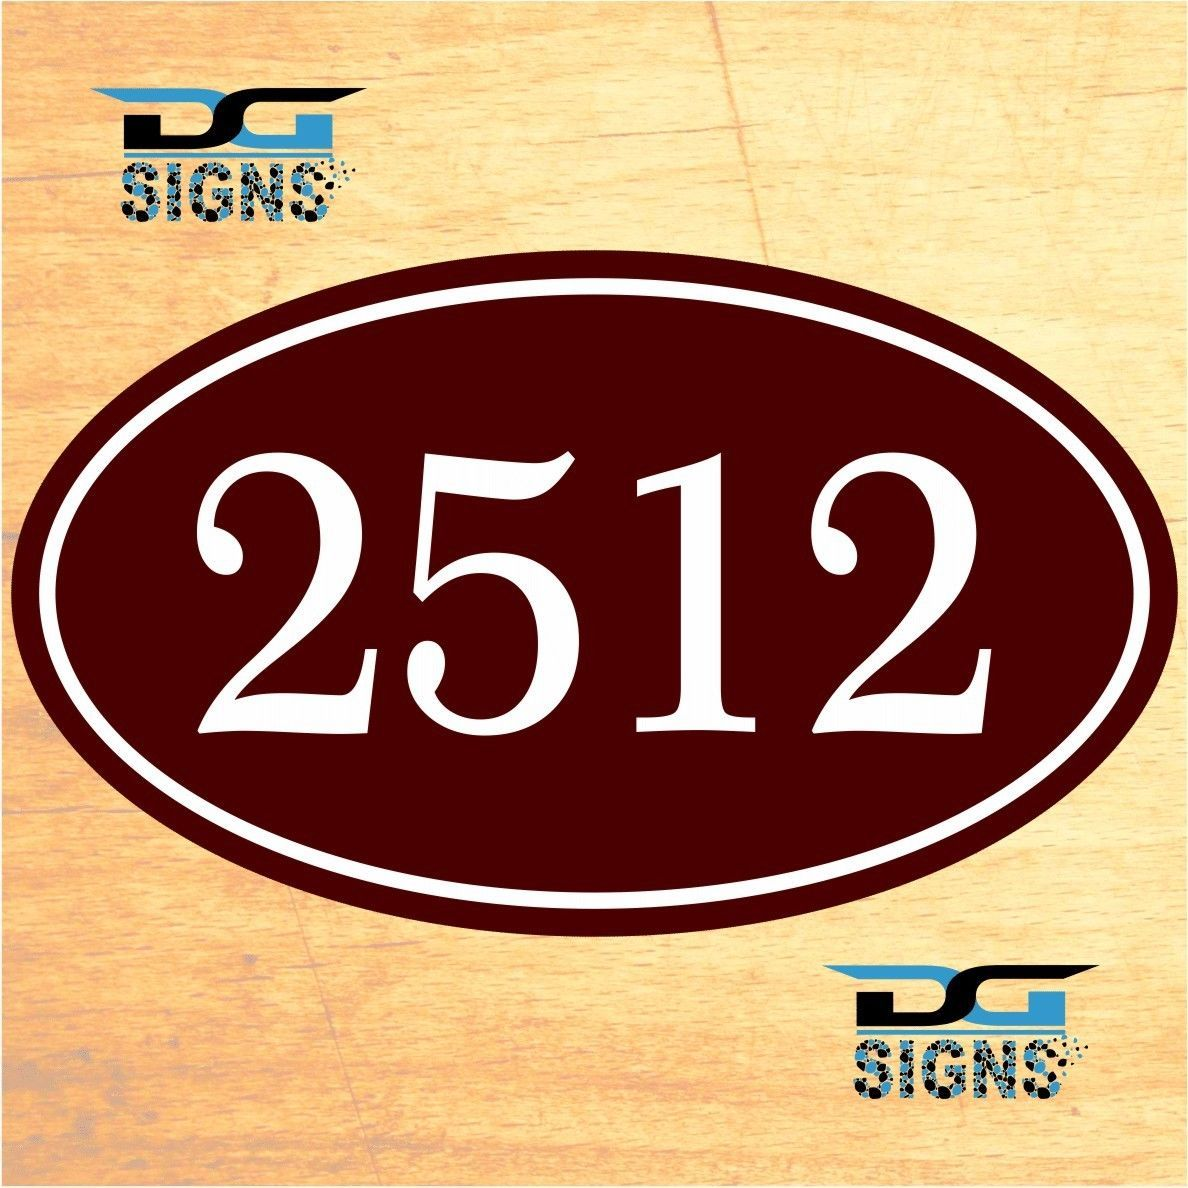 3012 personalized home address decorative custom plaque 12 x 7 aluminum sign ebay. Black Bedroom Furniture Sets. Home Design Ideas